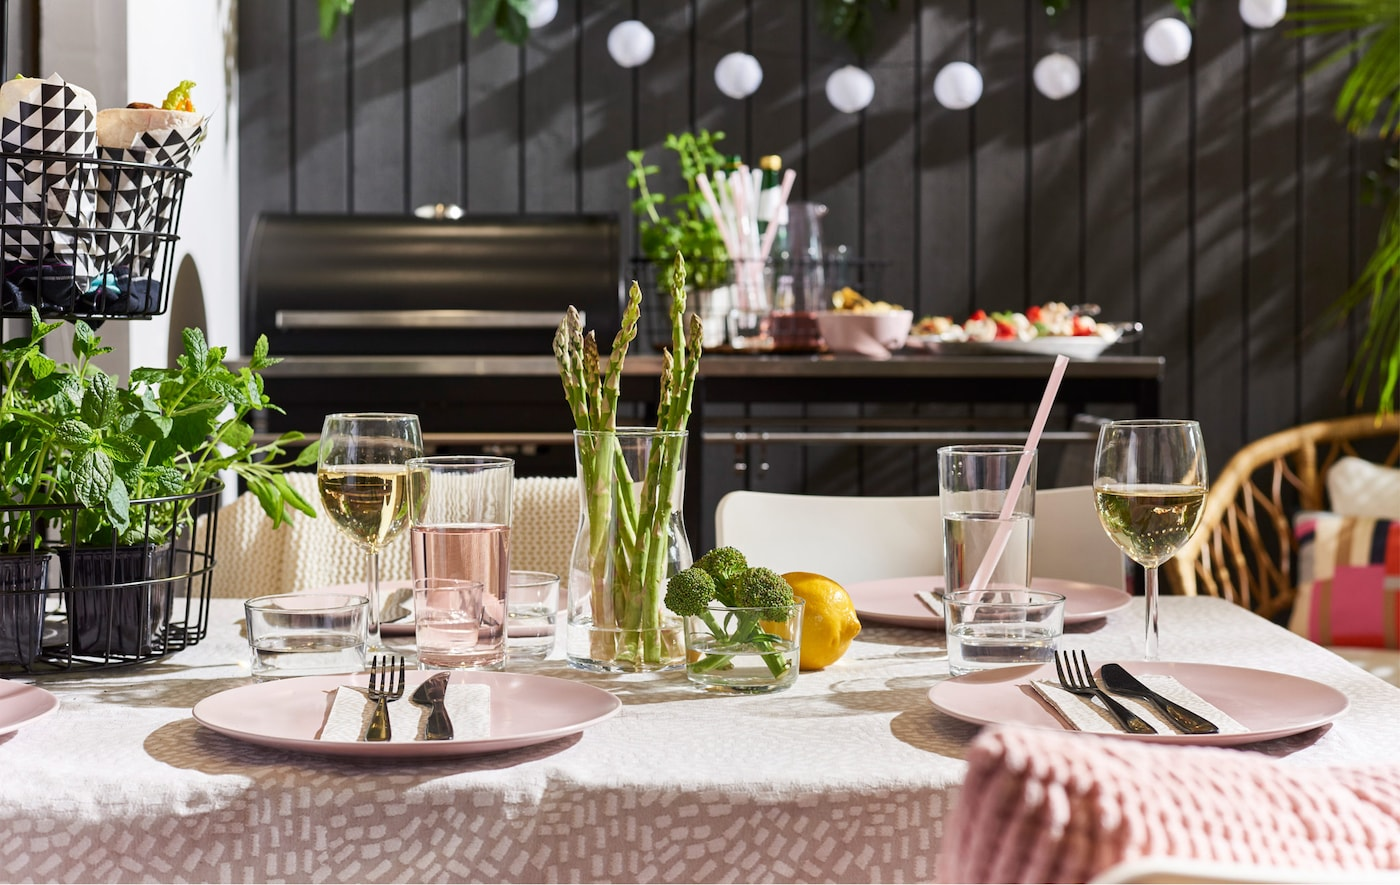 An outdoor dining table set with seasonal table settings and pink dishes and tablecloth